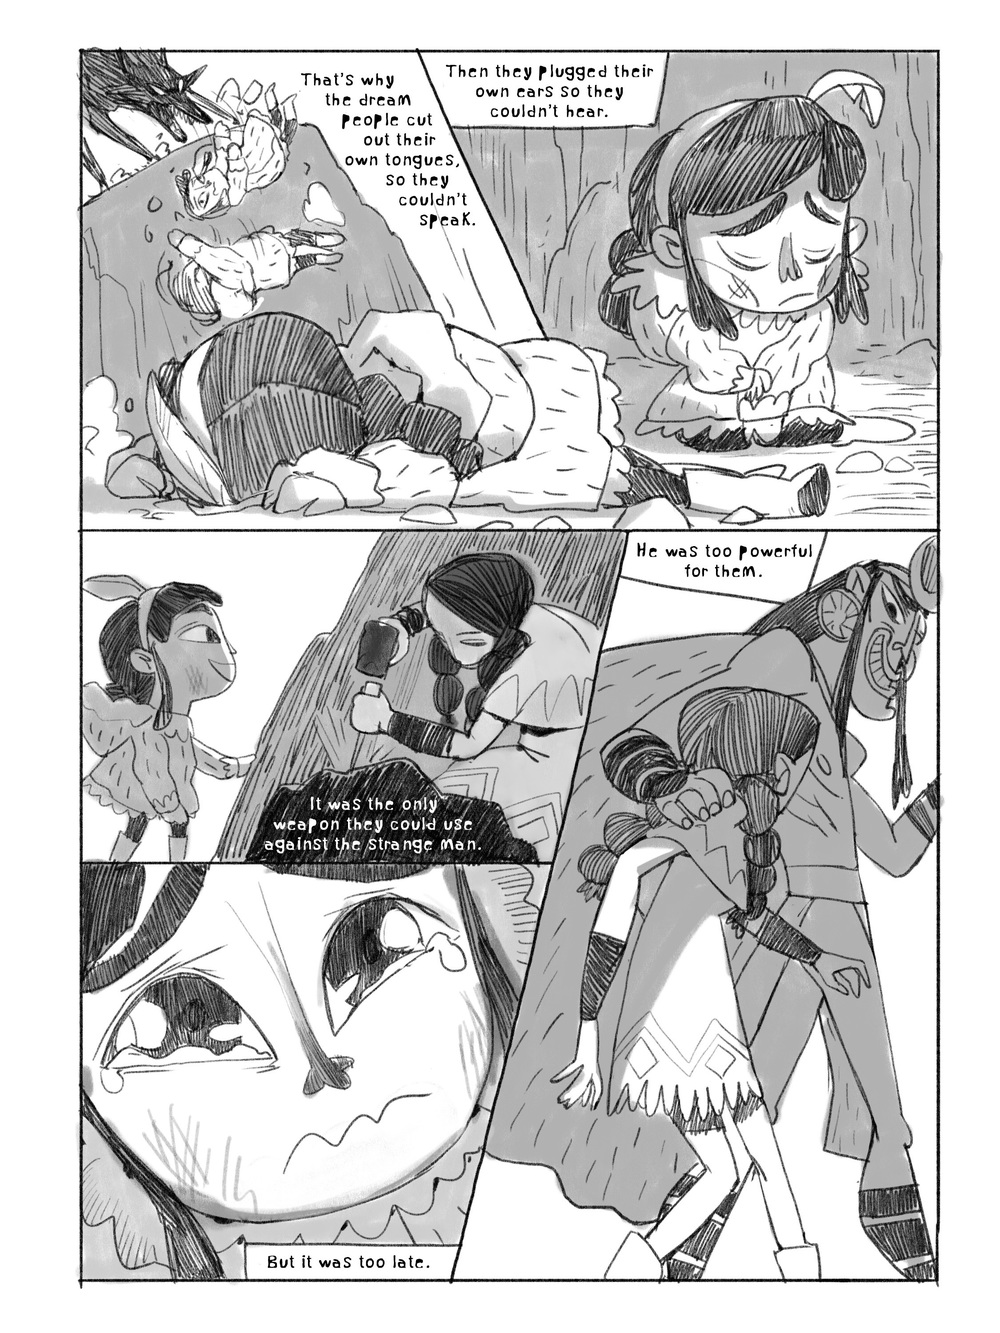 Sticks&Stones_page03_final.JPG